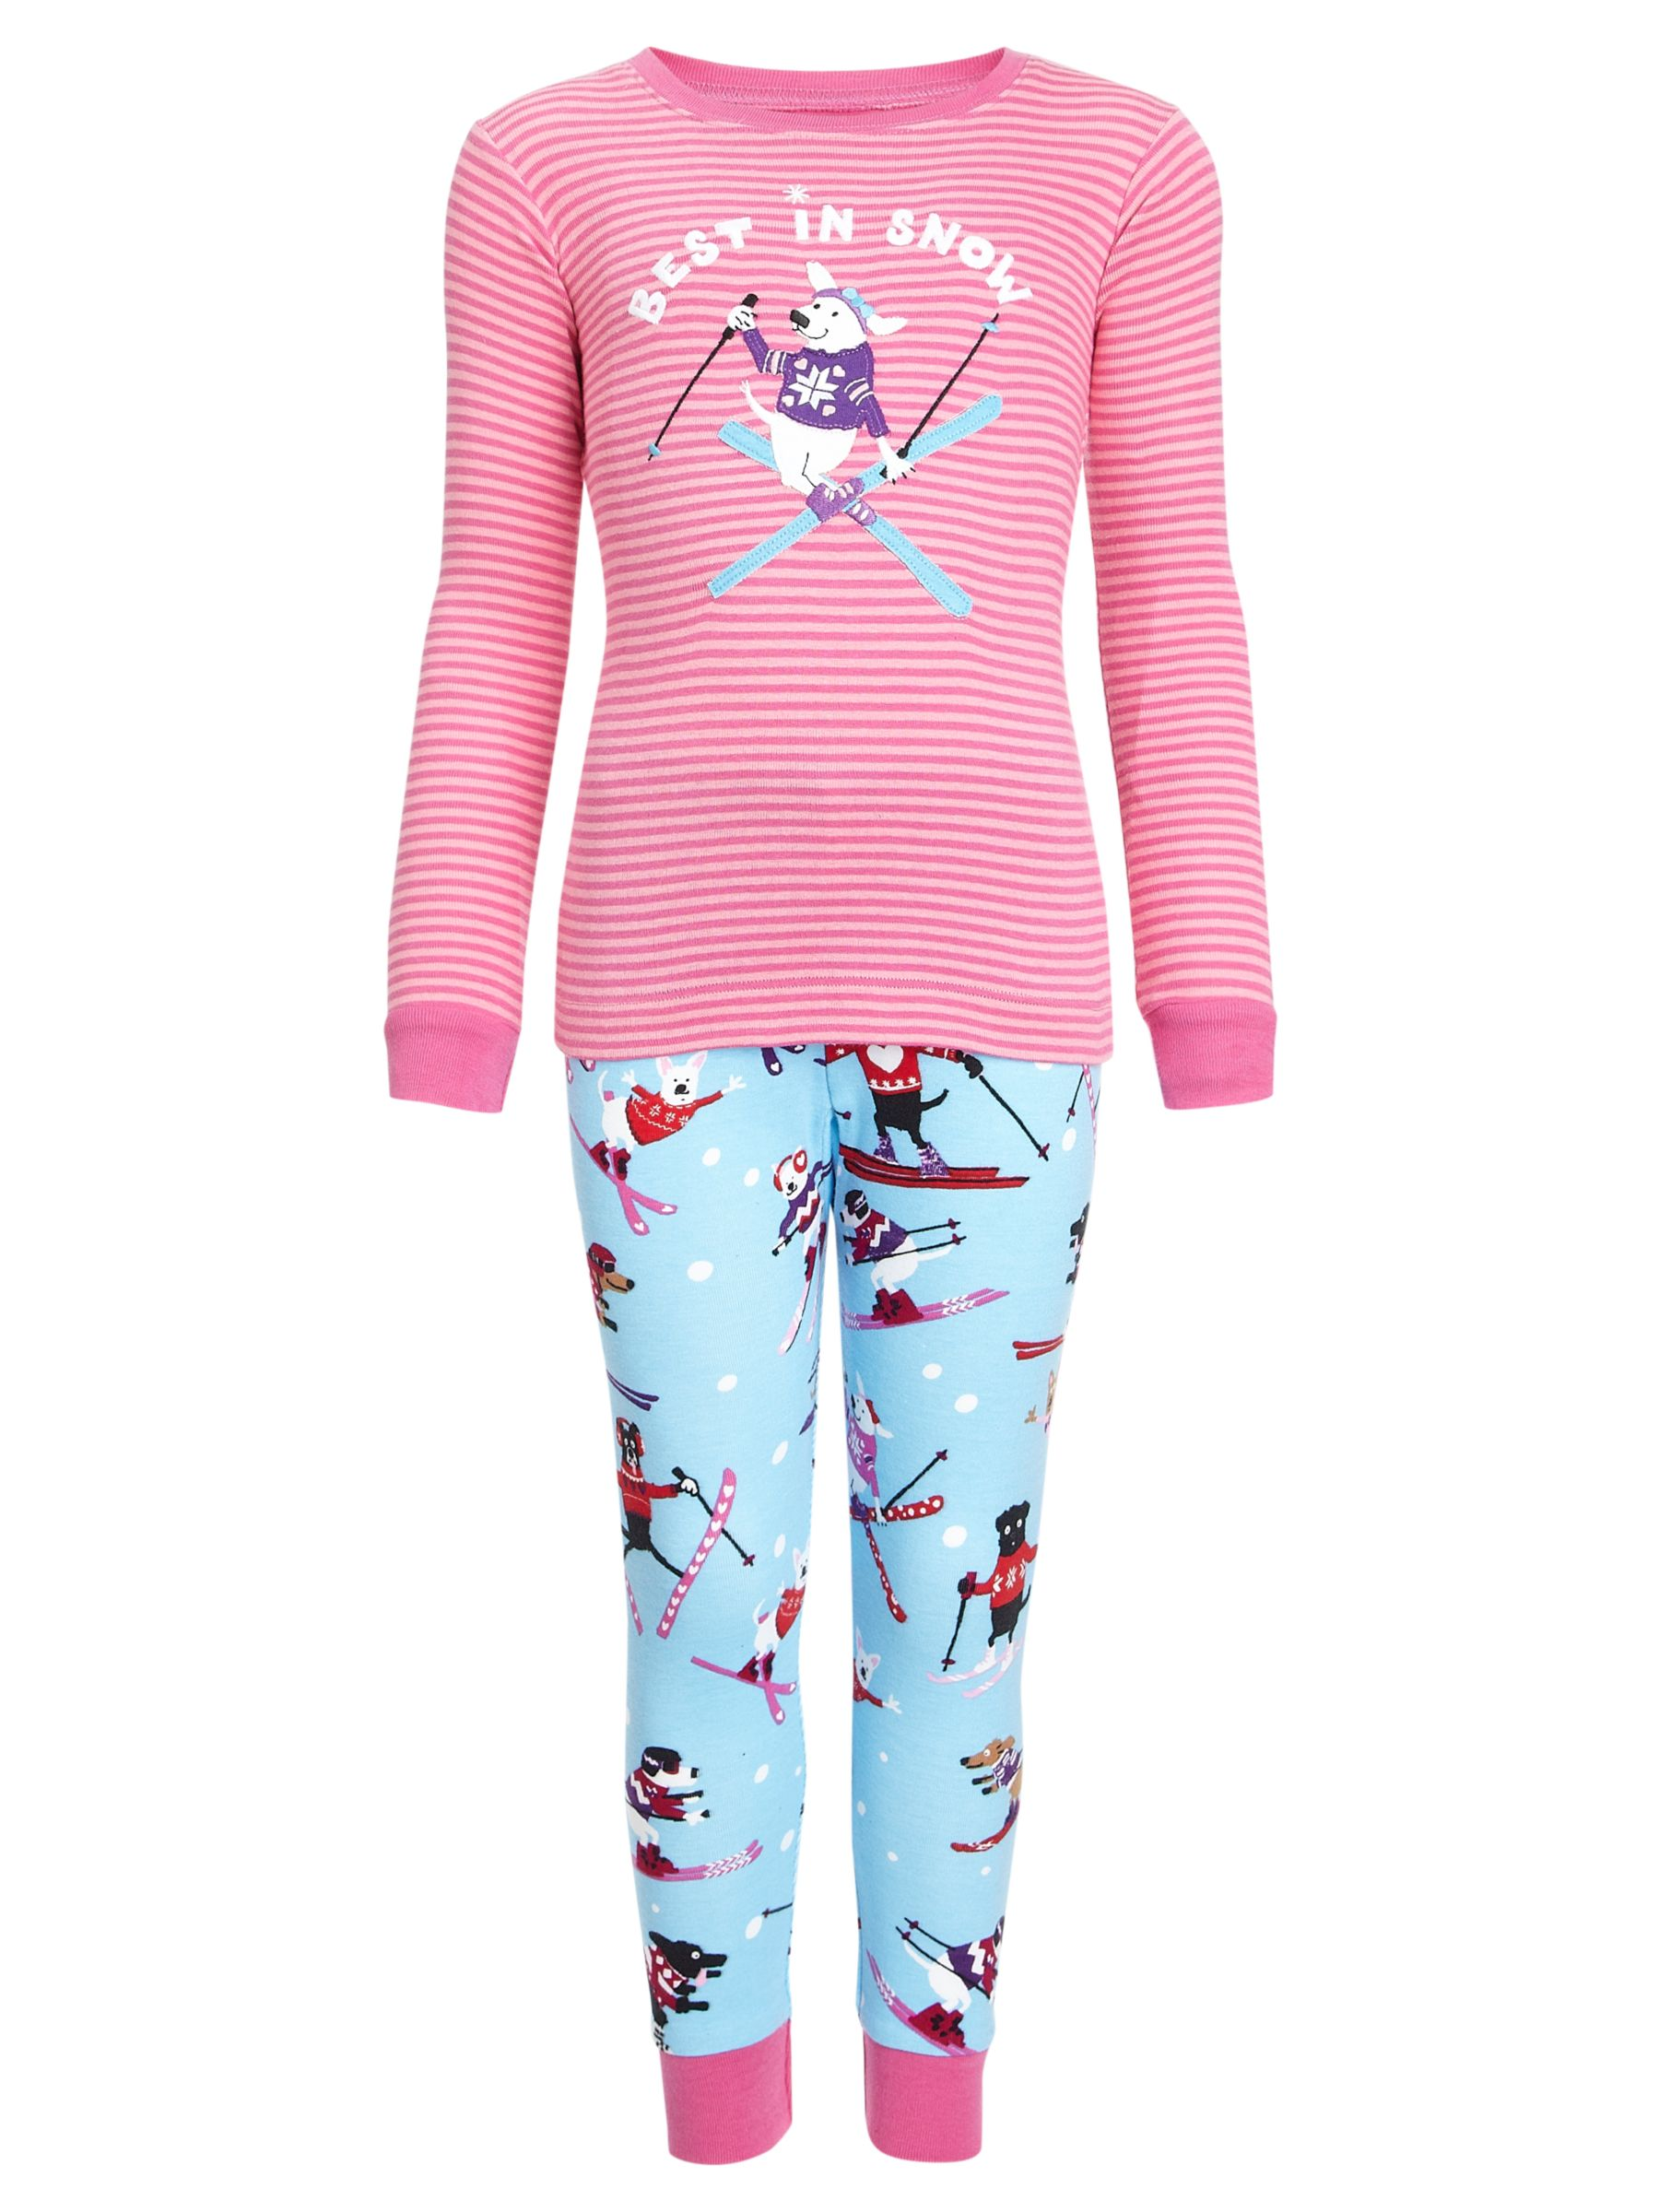 Hatley Best in Snow Pyjamas, Pink/Blue